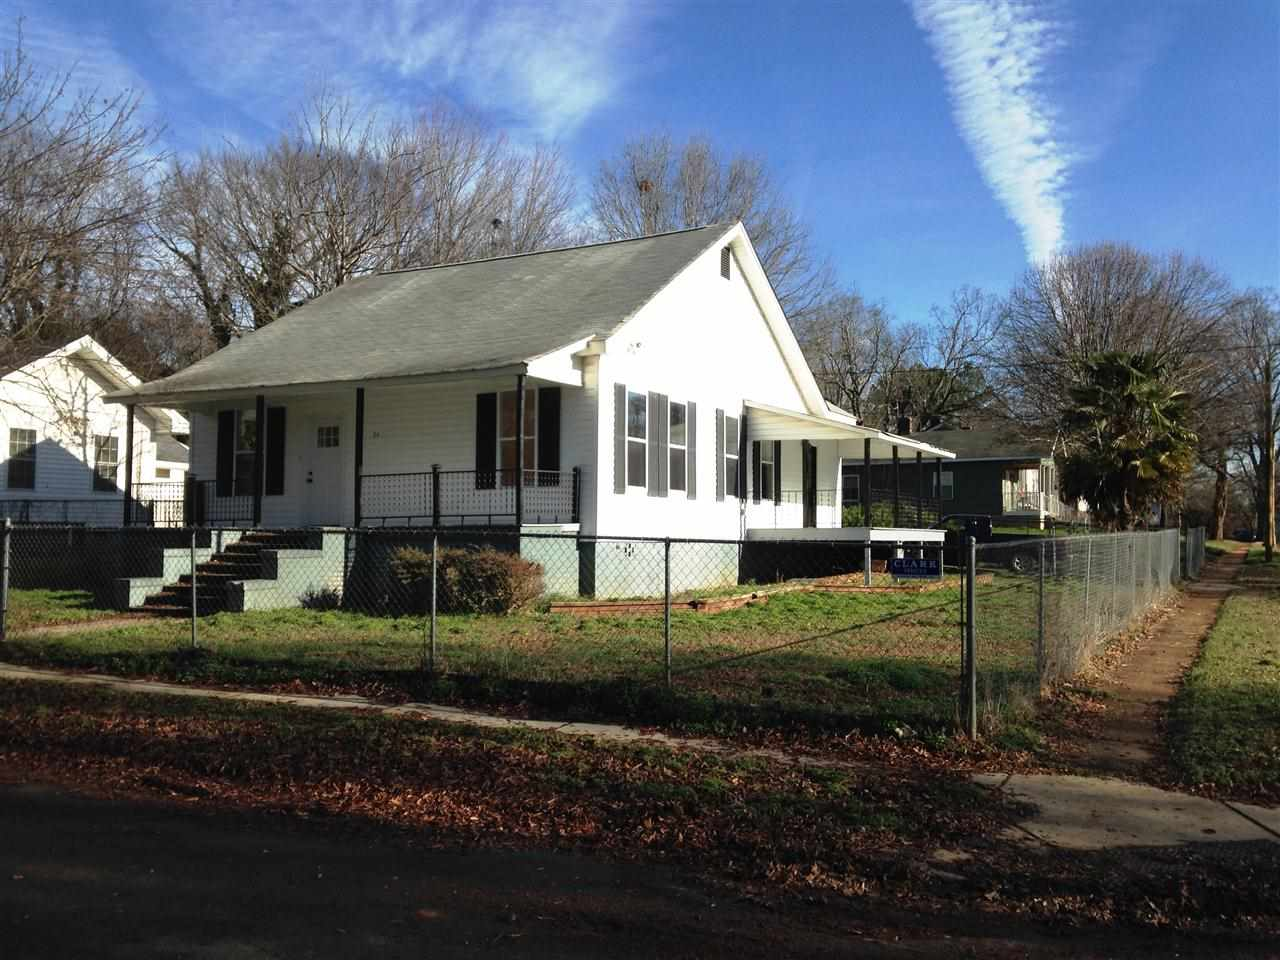 Rental Homes for Rent, ListingId:31426874, location: 340 Long St Rock Hill 29730